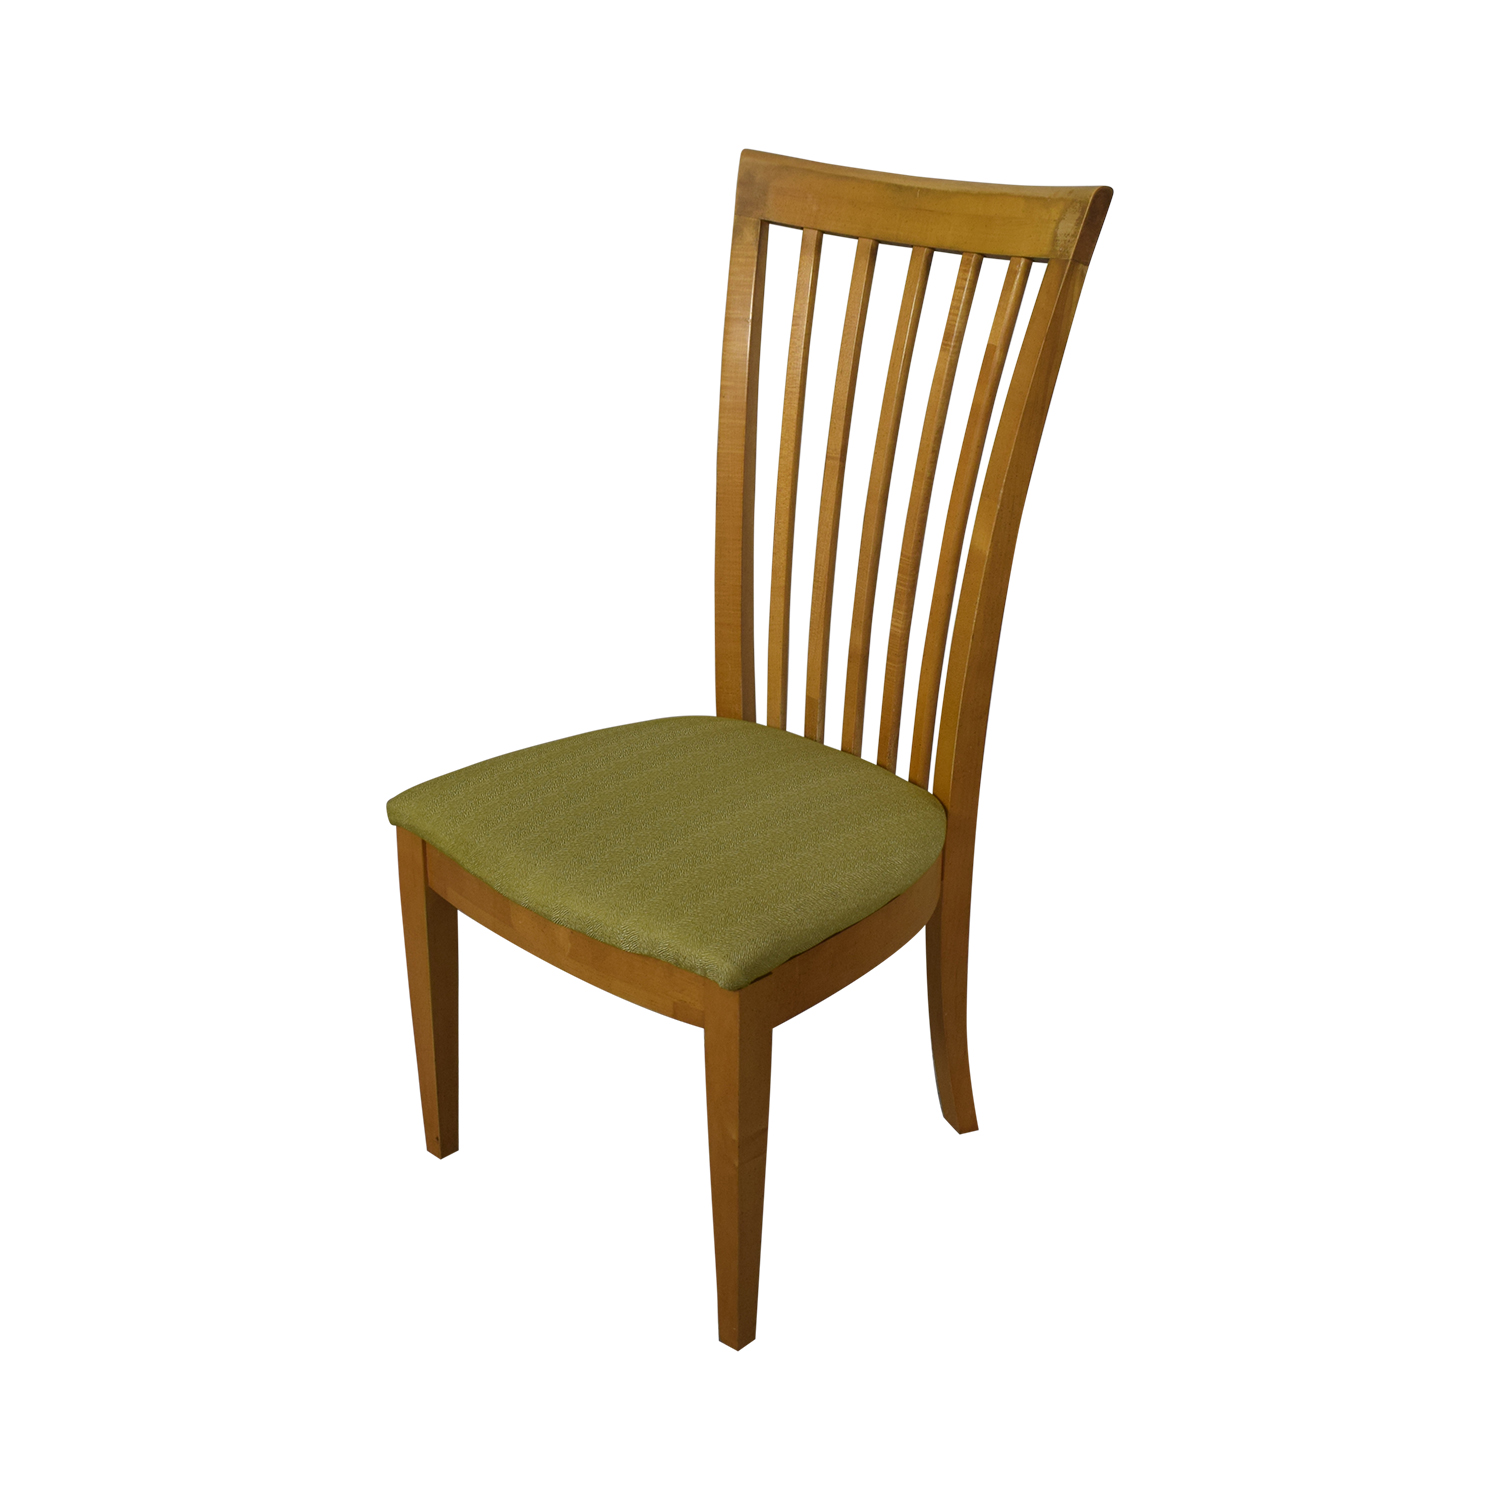 Stanley Furniture Natural Dining Set with Green Upholstered Chairs with Glass Protective Top dimensions